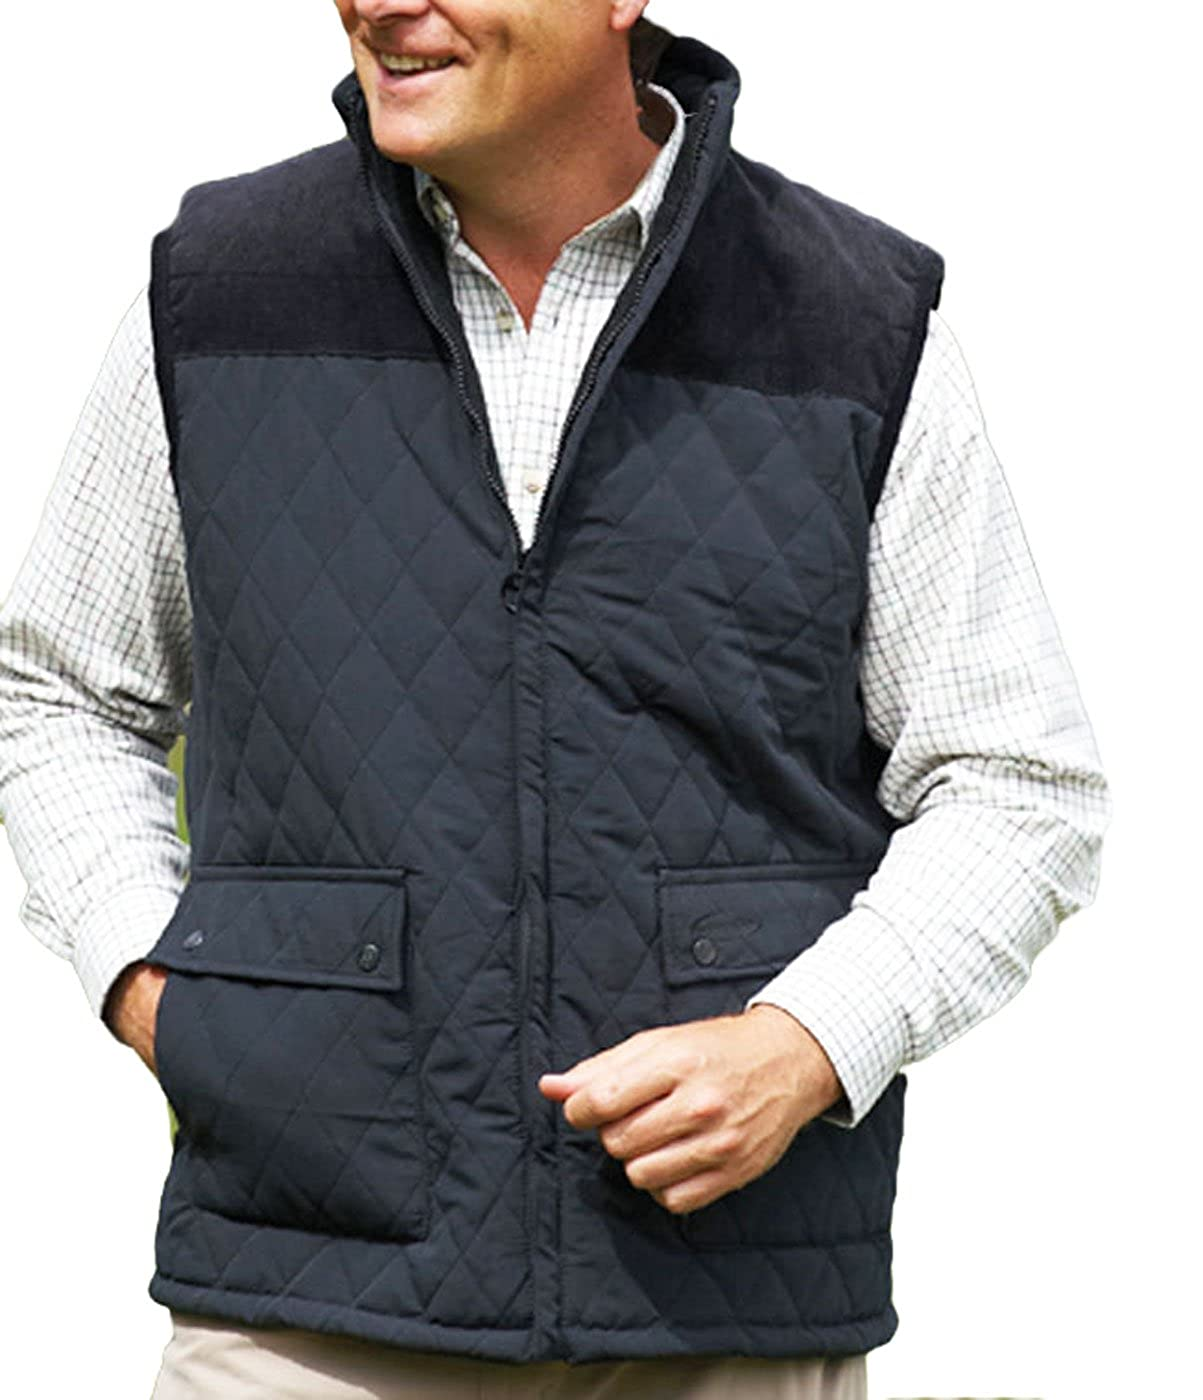 New Champion Country Estate gilet outdoor bodywarmer Diamond Quilted waistcoat Outerwear jacket fishing hunting shooting walking farming Black M MCOAT-CHAMPION-3613-Black-MED